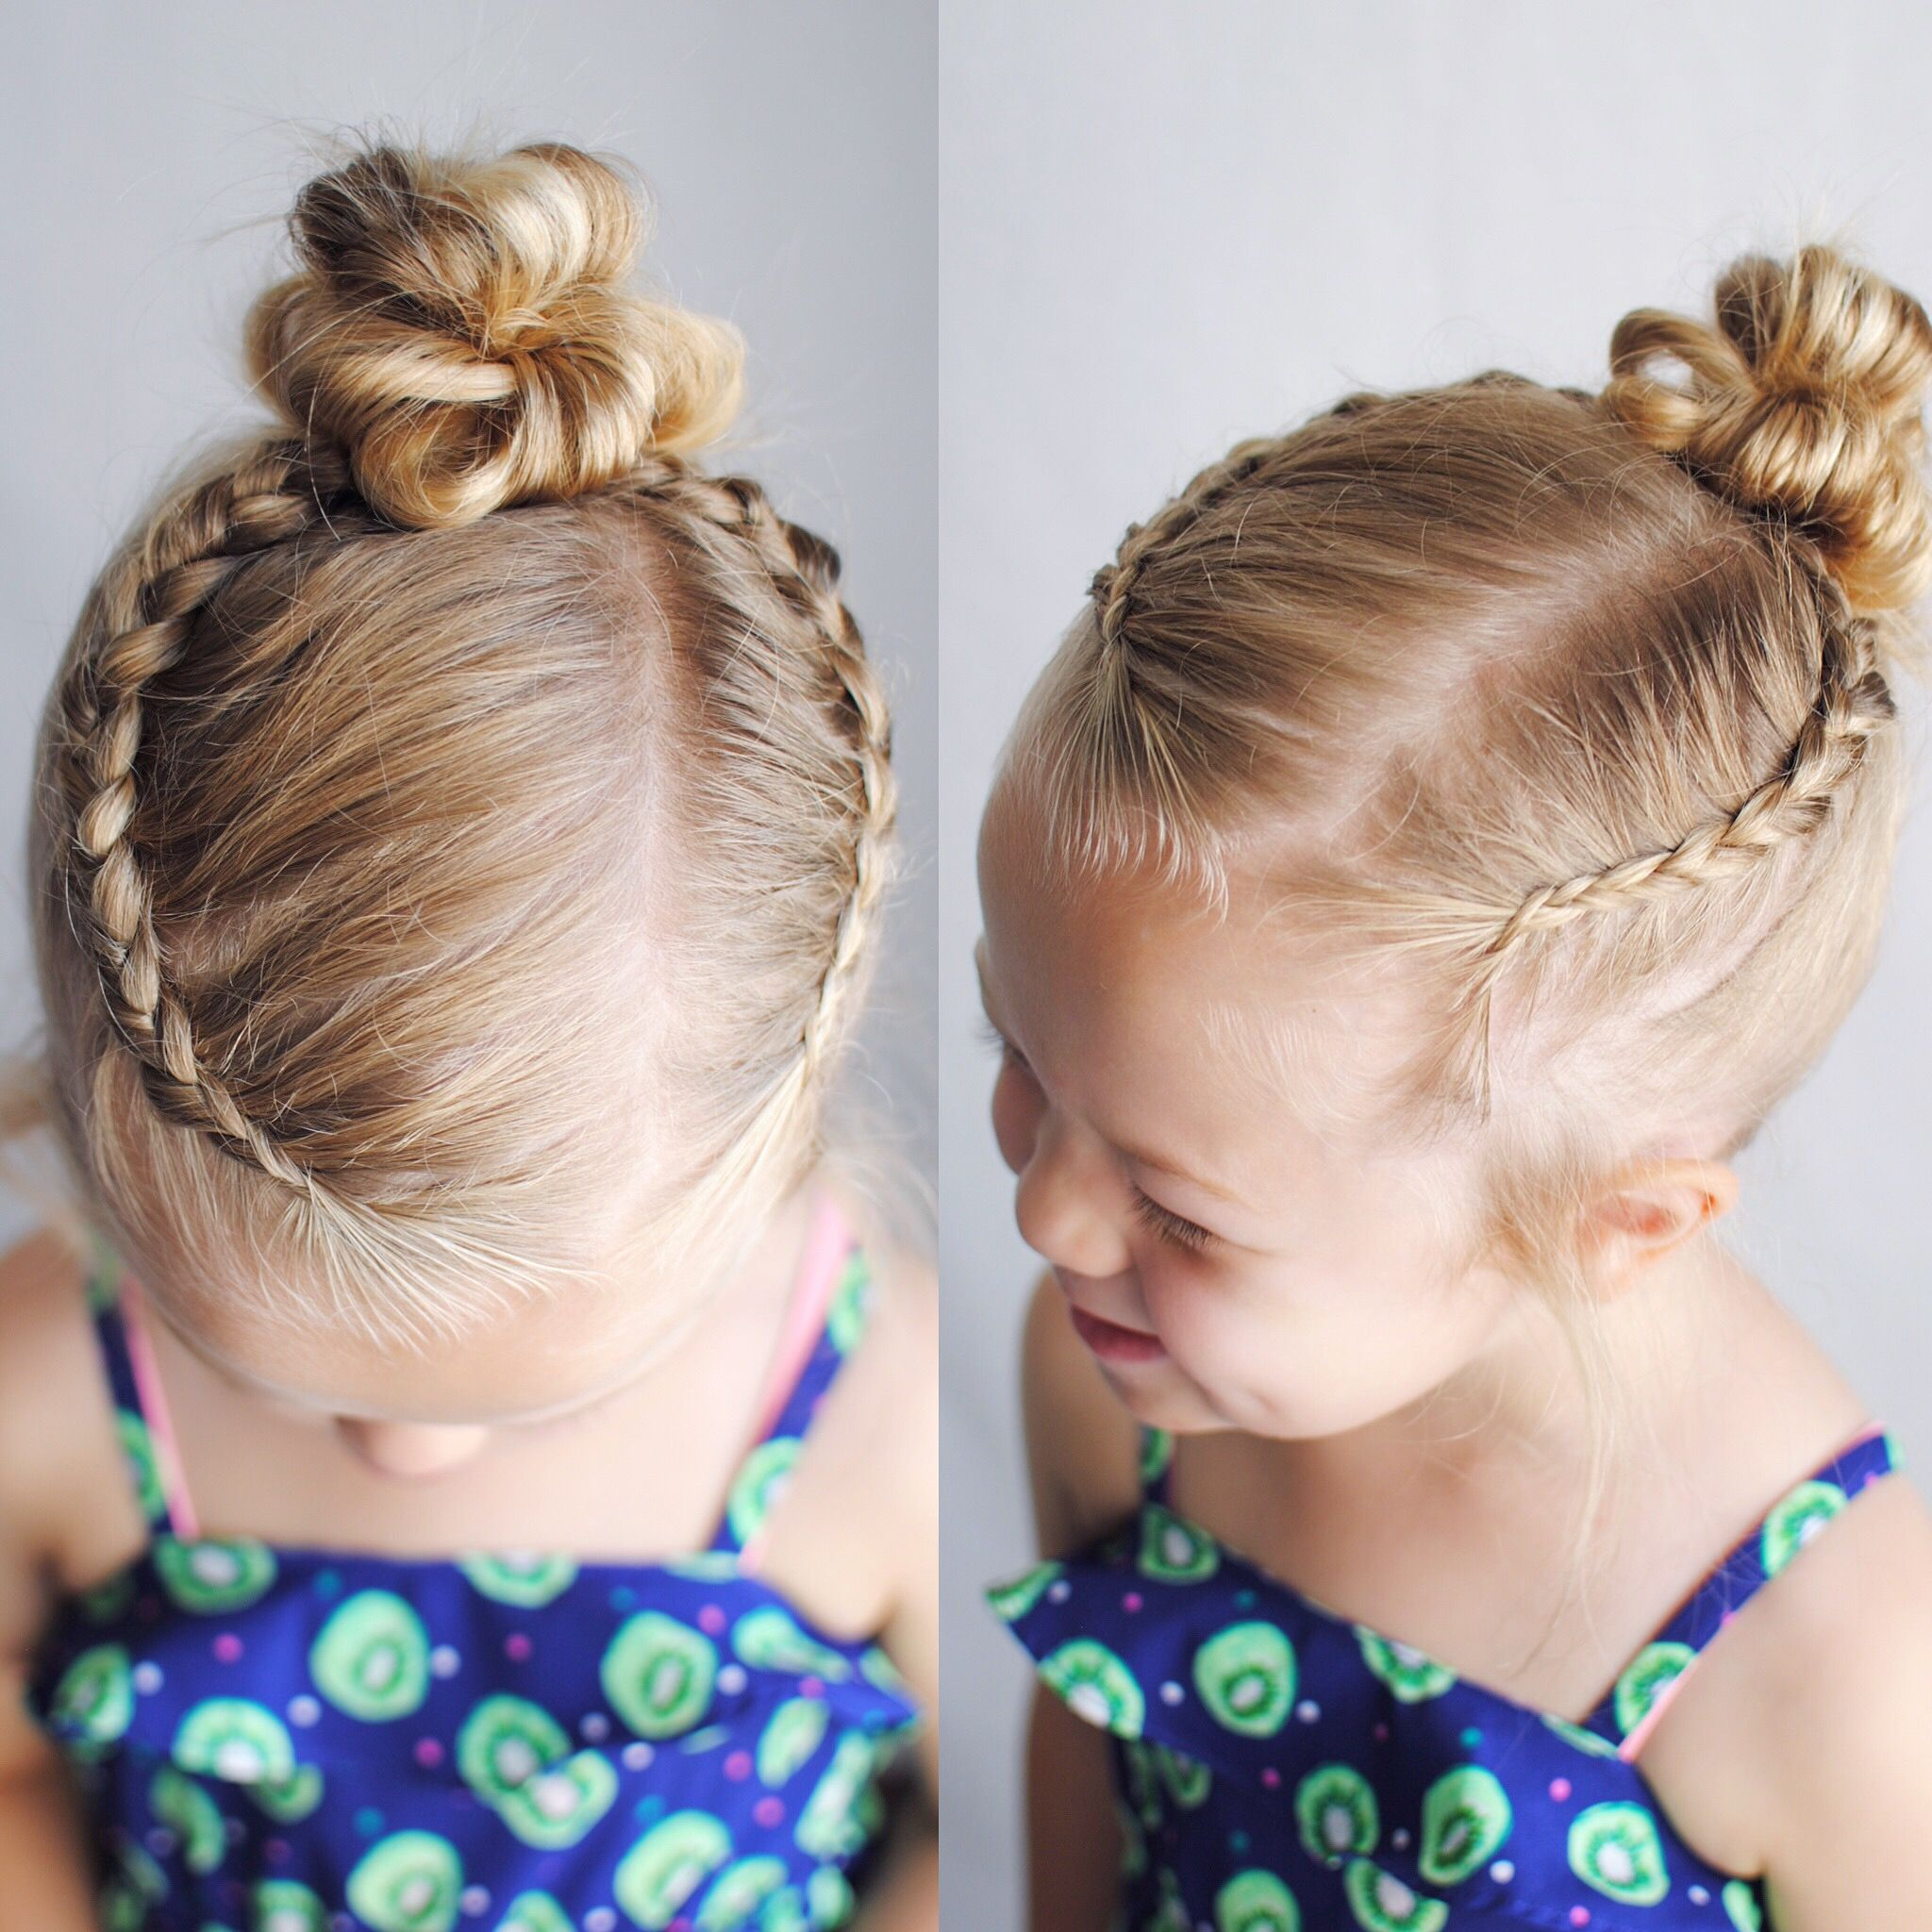 Two Dutch braids parted into a top knot or messy bun